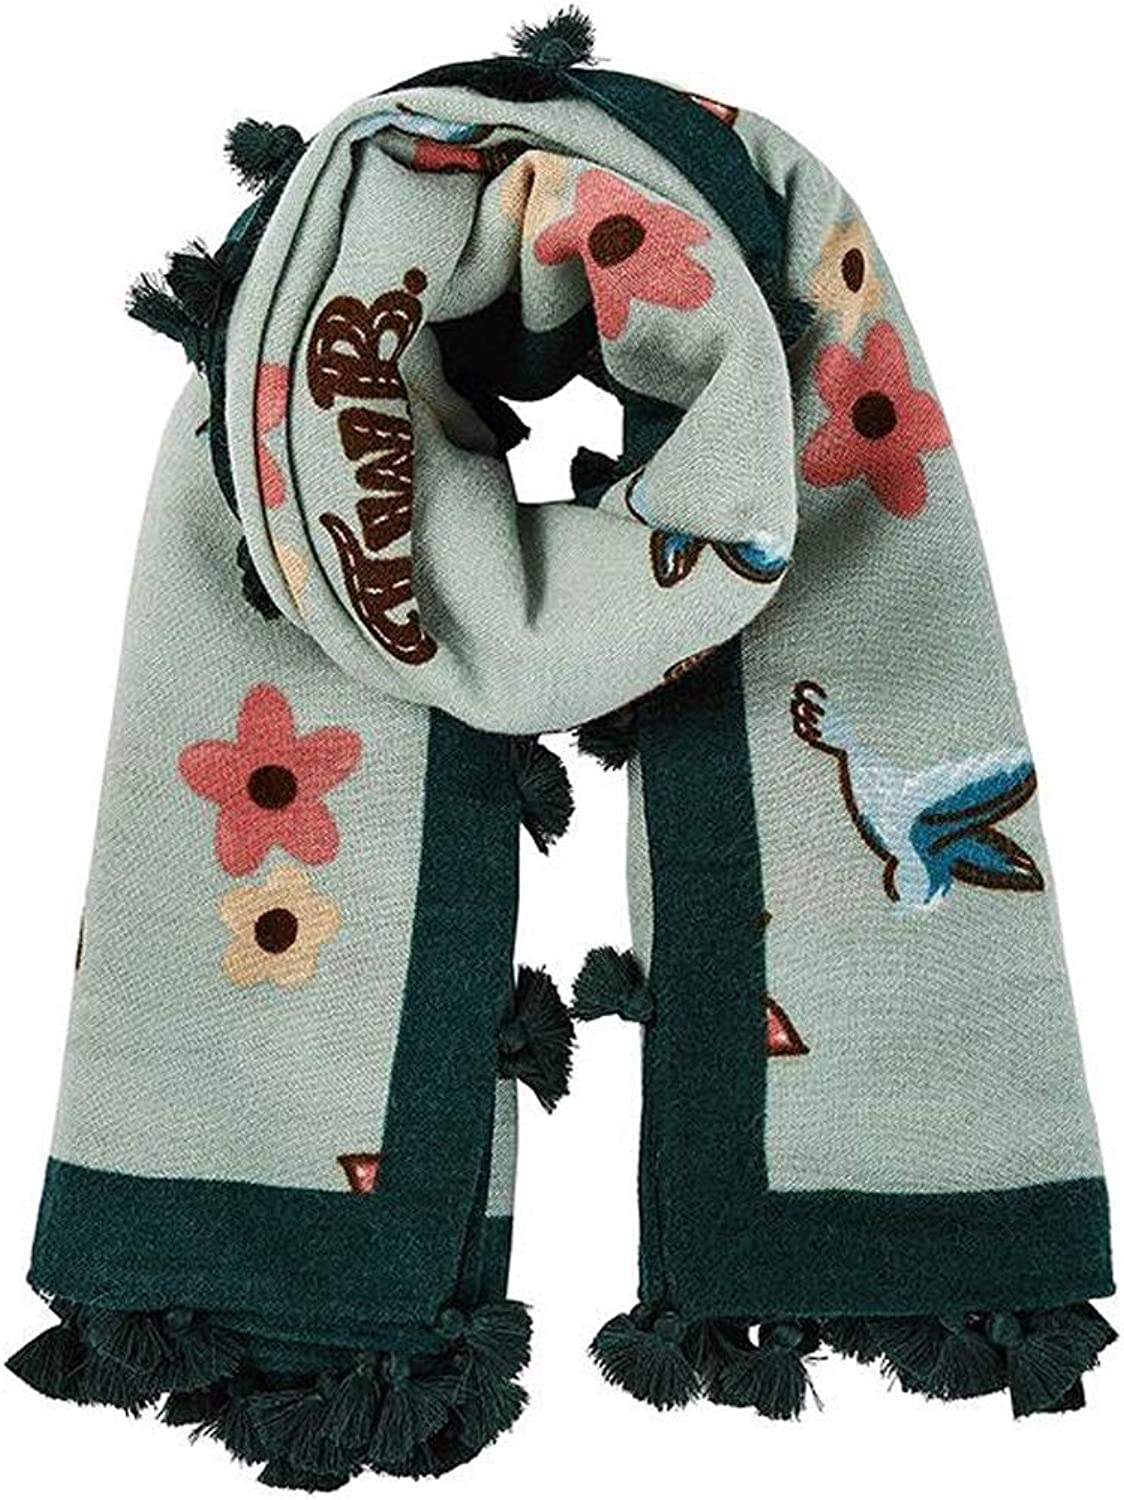 JUN New Ladies Scarf Autumn and Winter New Print Thickening Warm Casual color Diversity (color   C)